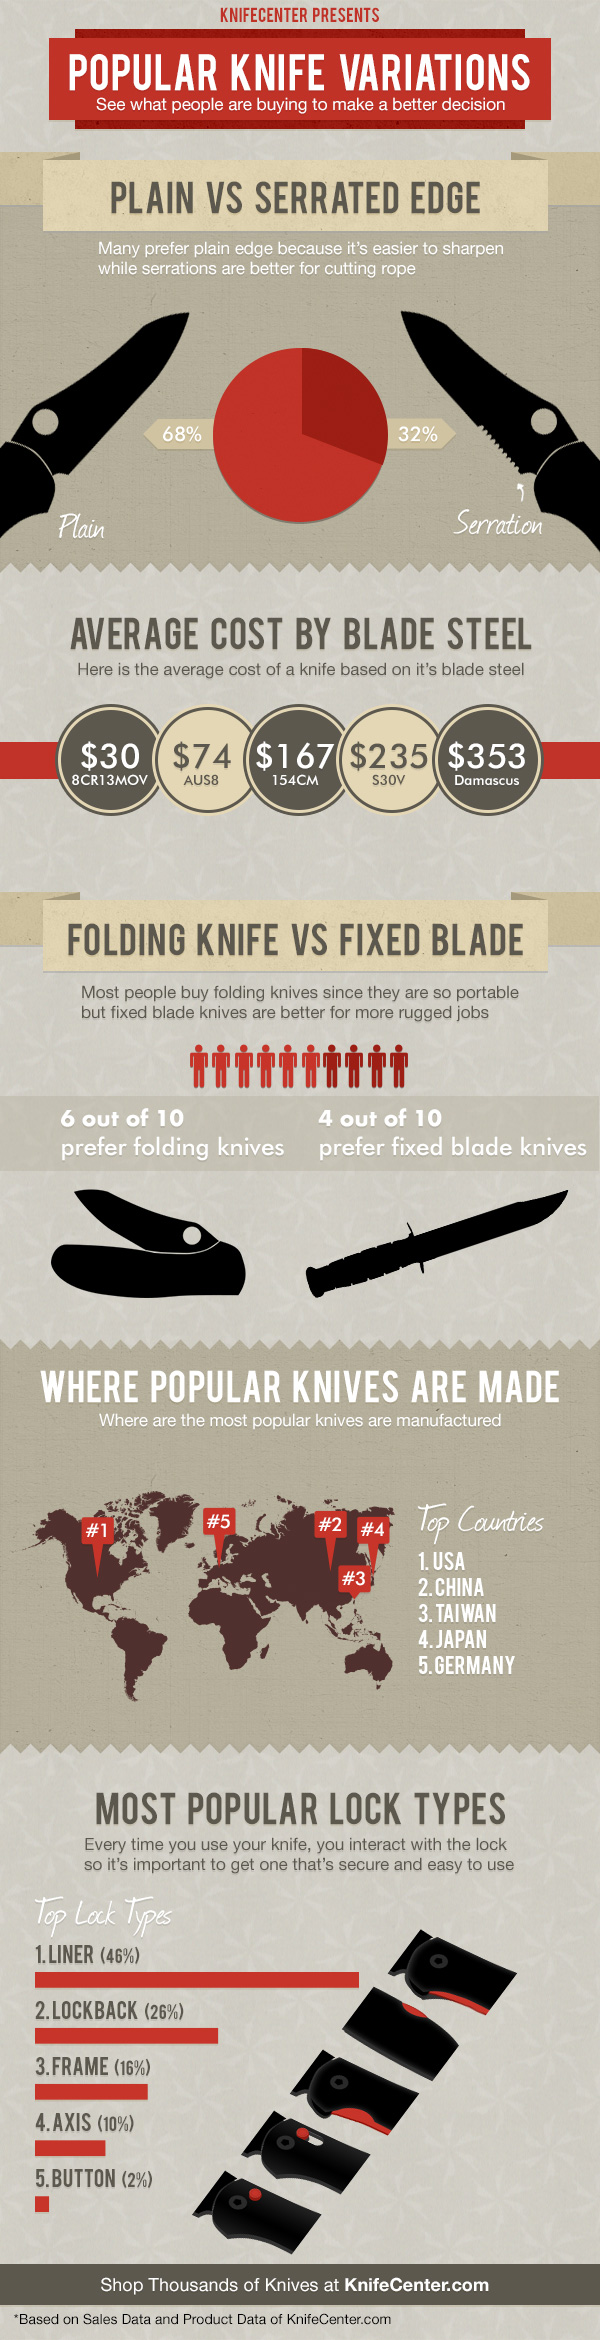 Knife Preferences of Consumers